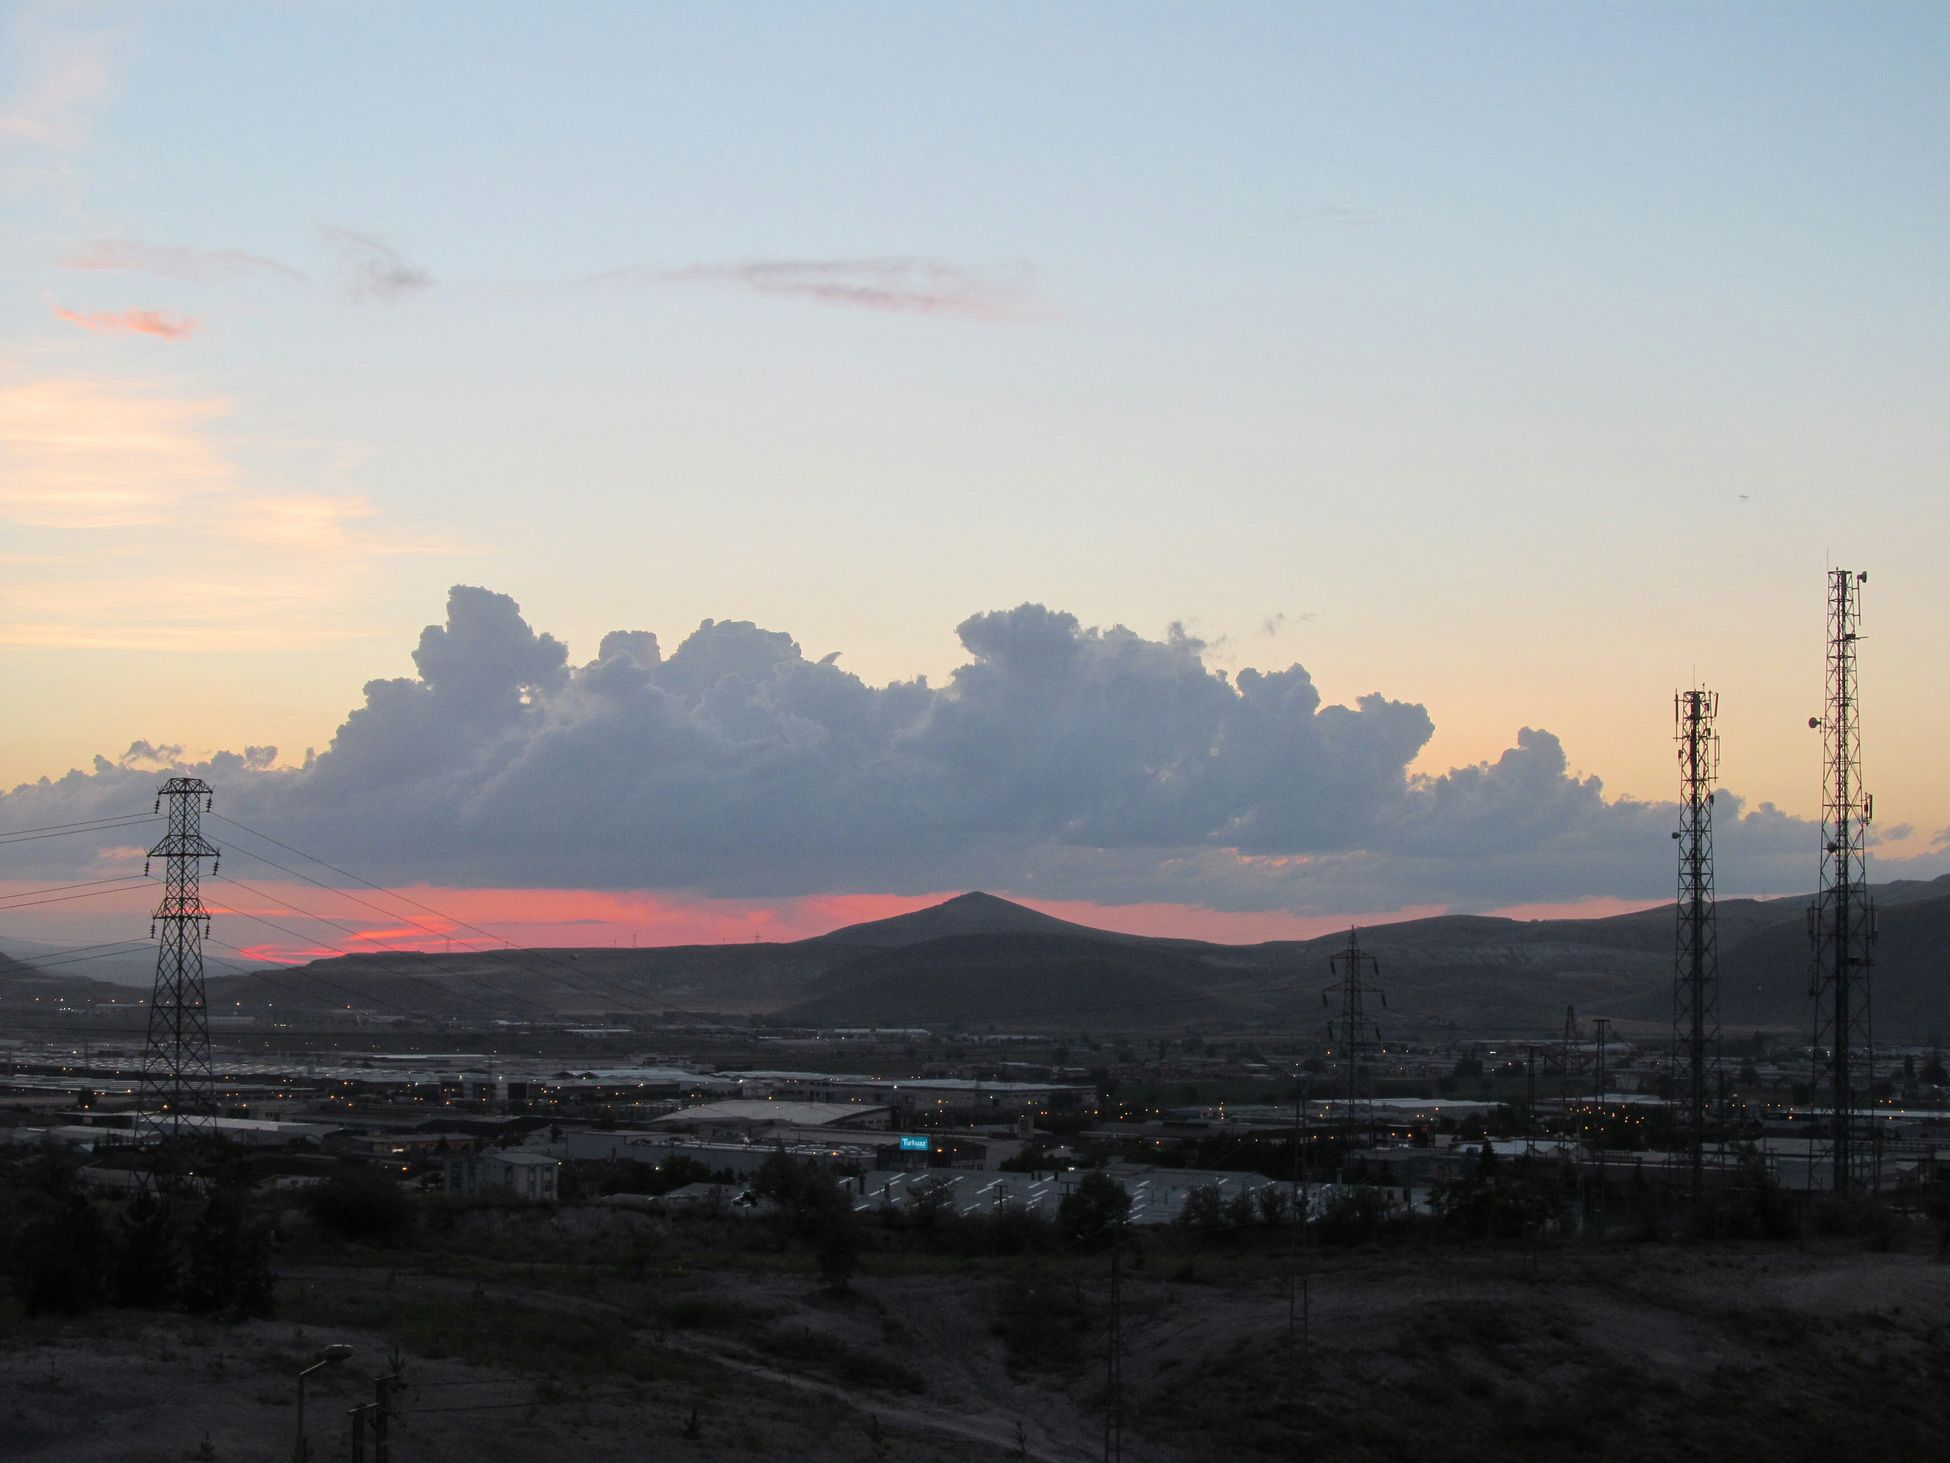 Sunset Sunset_collection Sky Sky And Clouds Clouds Clouds And Sky Pole Town Orange Sky Red Sky Canon Powershot Sx150 IS